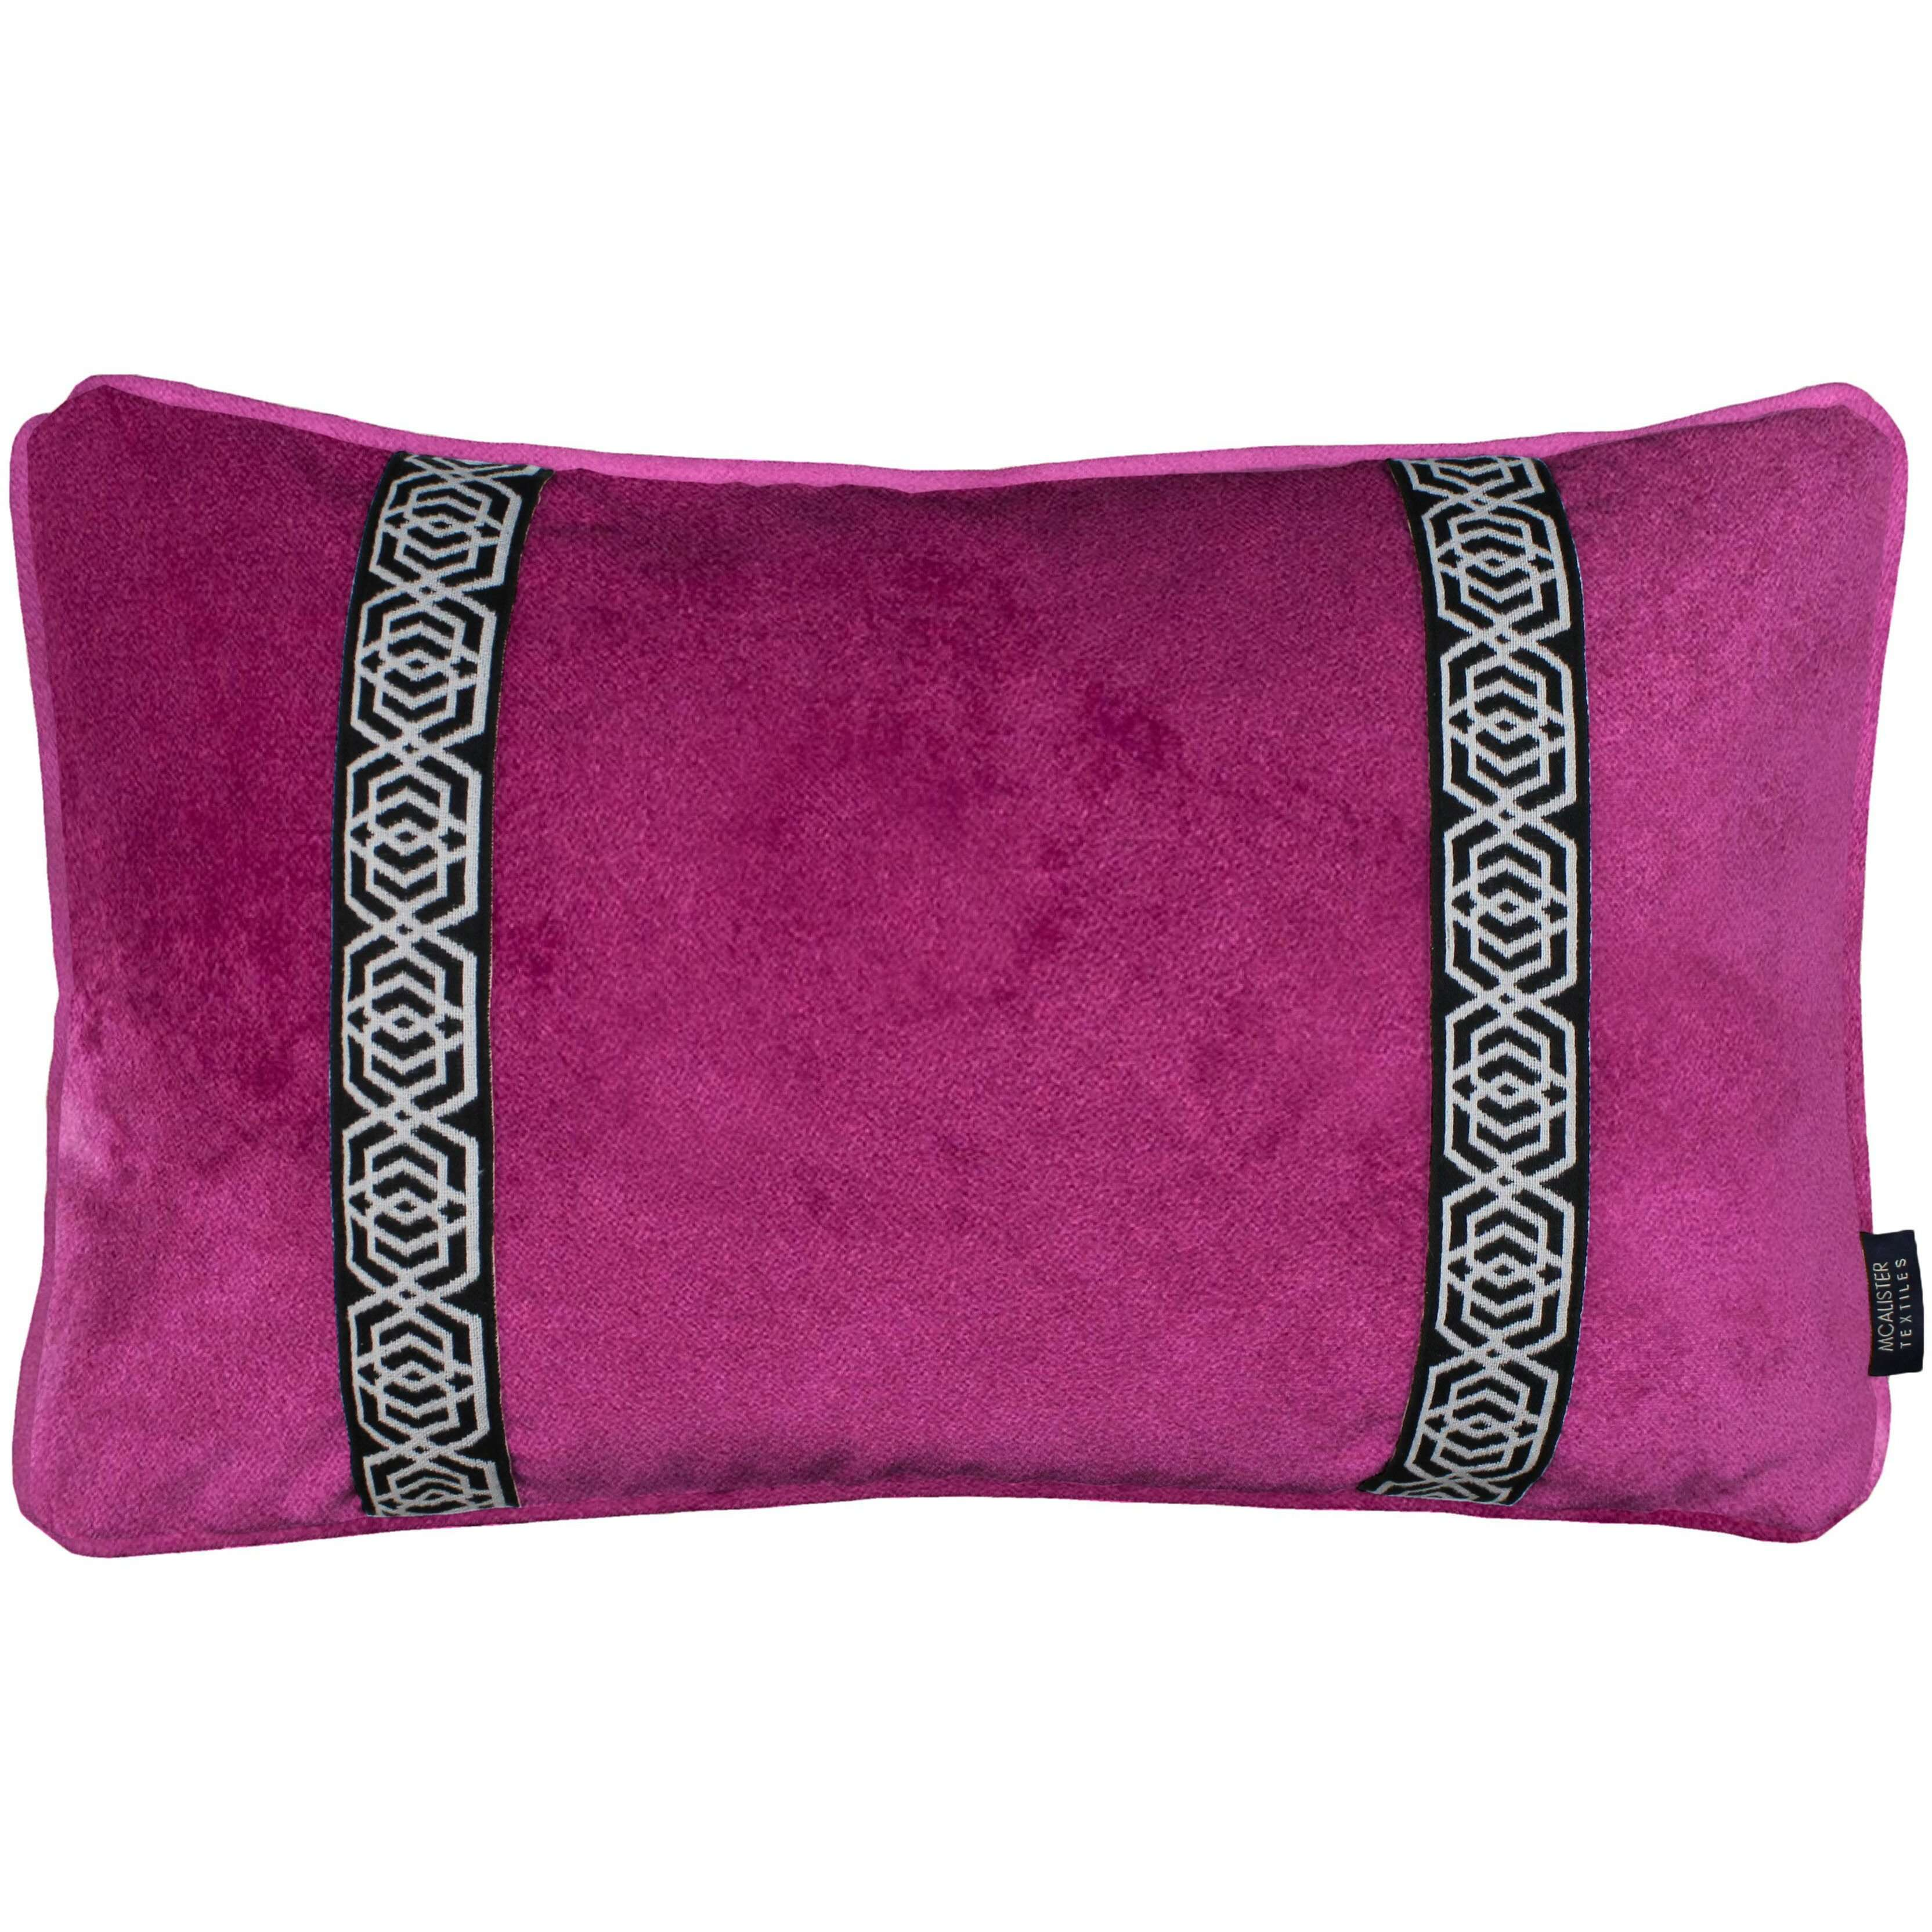 McAlister Textiles Coba Striped Fuchsia Pink Velvet Pillow Pillow Cover Only 50cm x 30cm